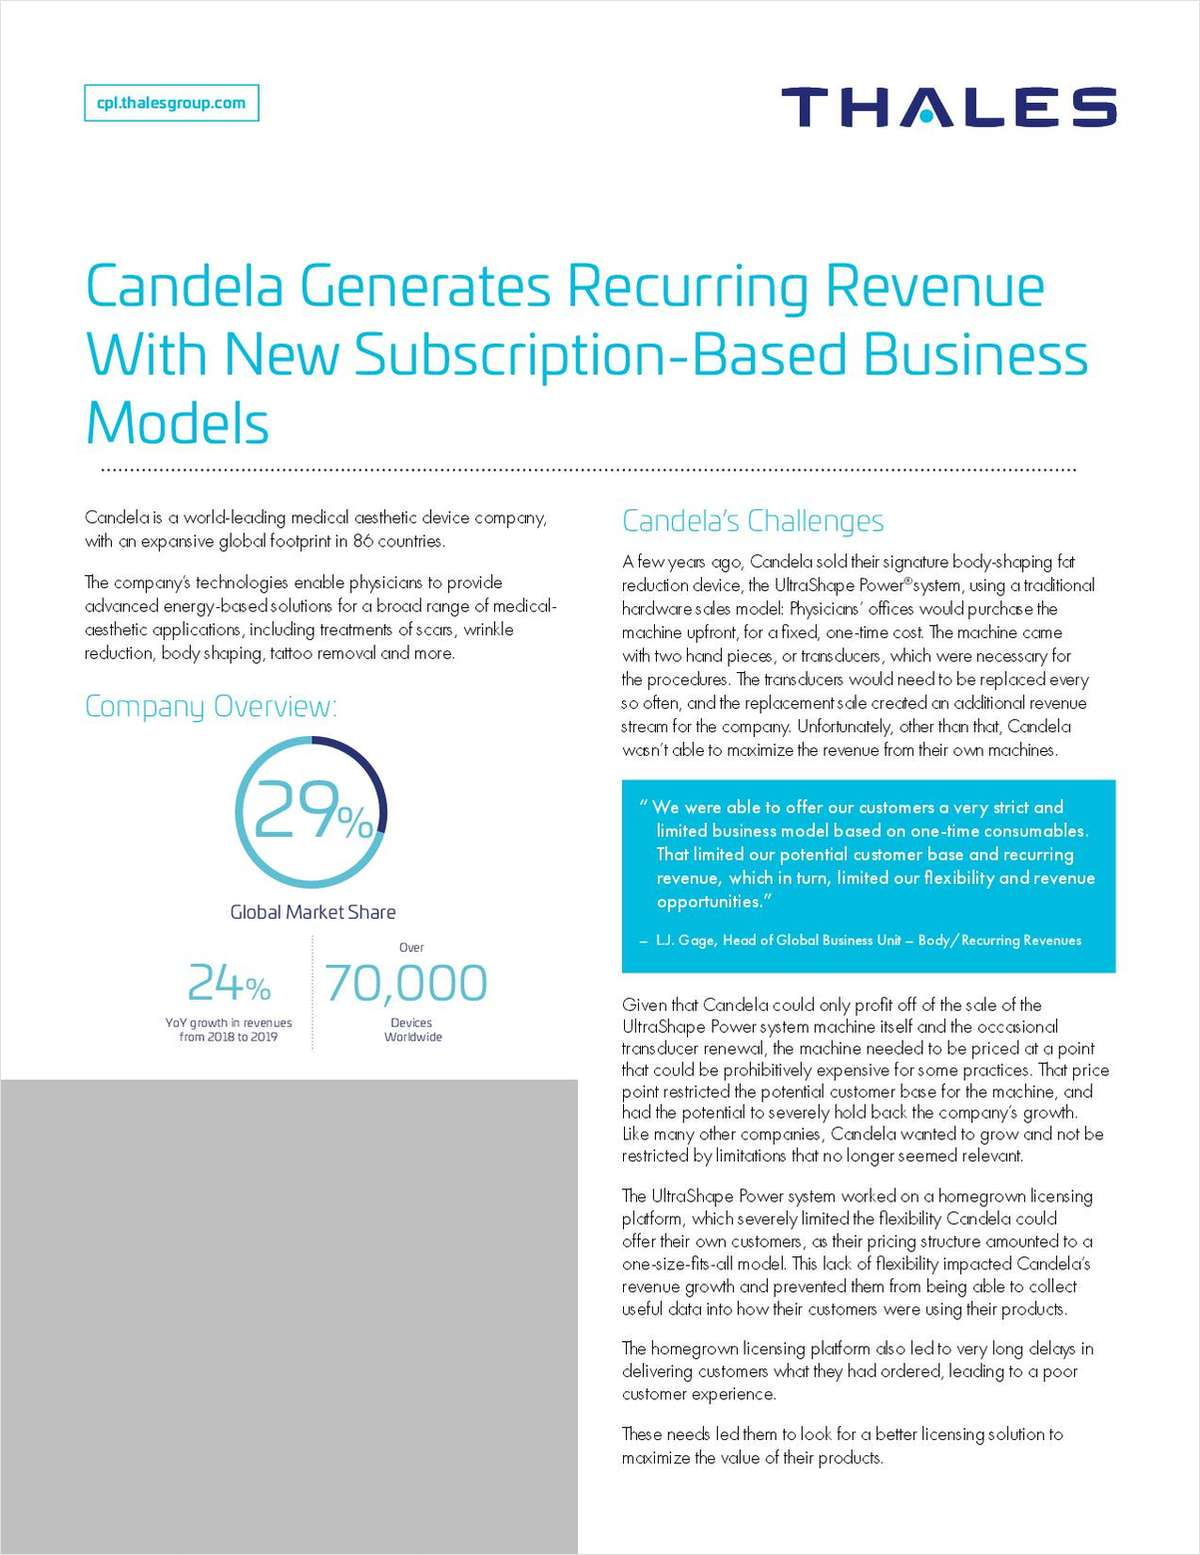 Medical aesthetic device company Candela generates recurring revenue with new subscription-based business models